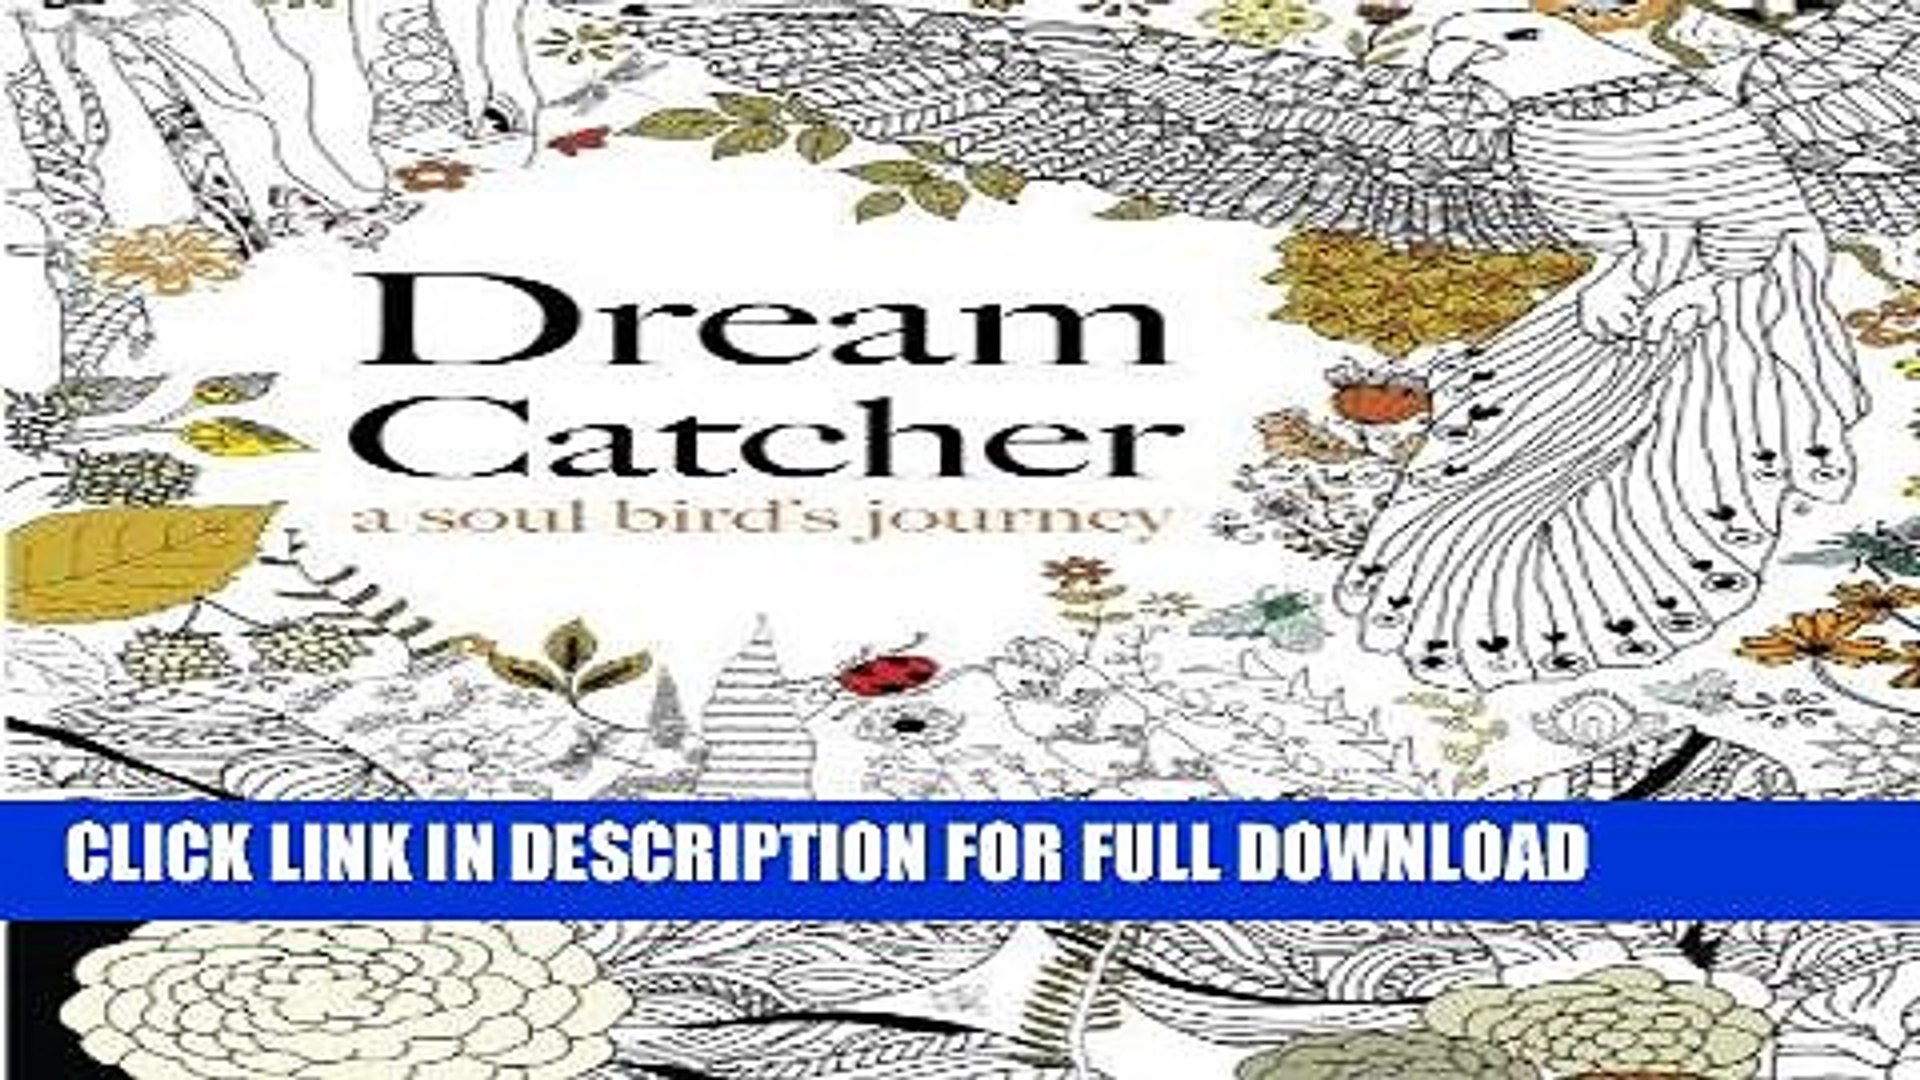 Best Seller Dream Catcher: a soul bird s journey: A beautiful and inspiring colouring book for all